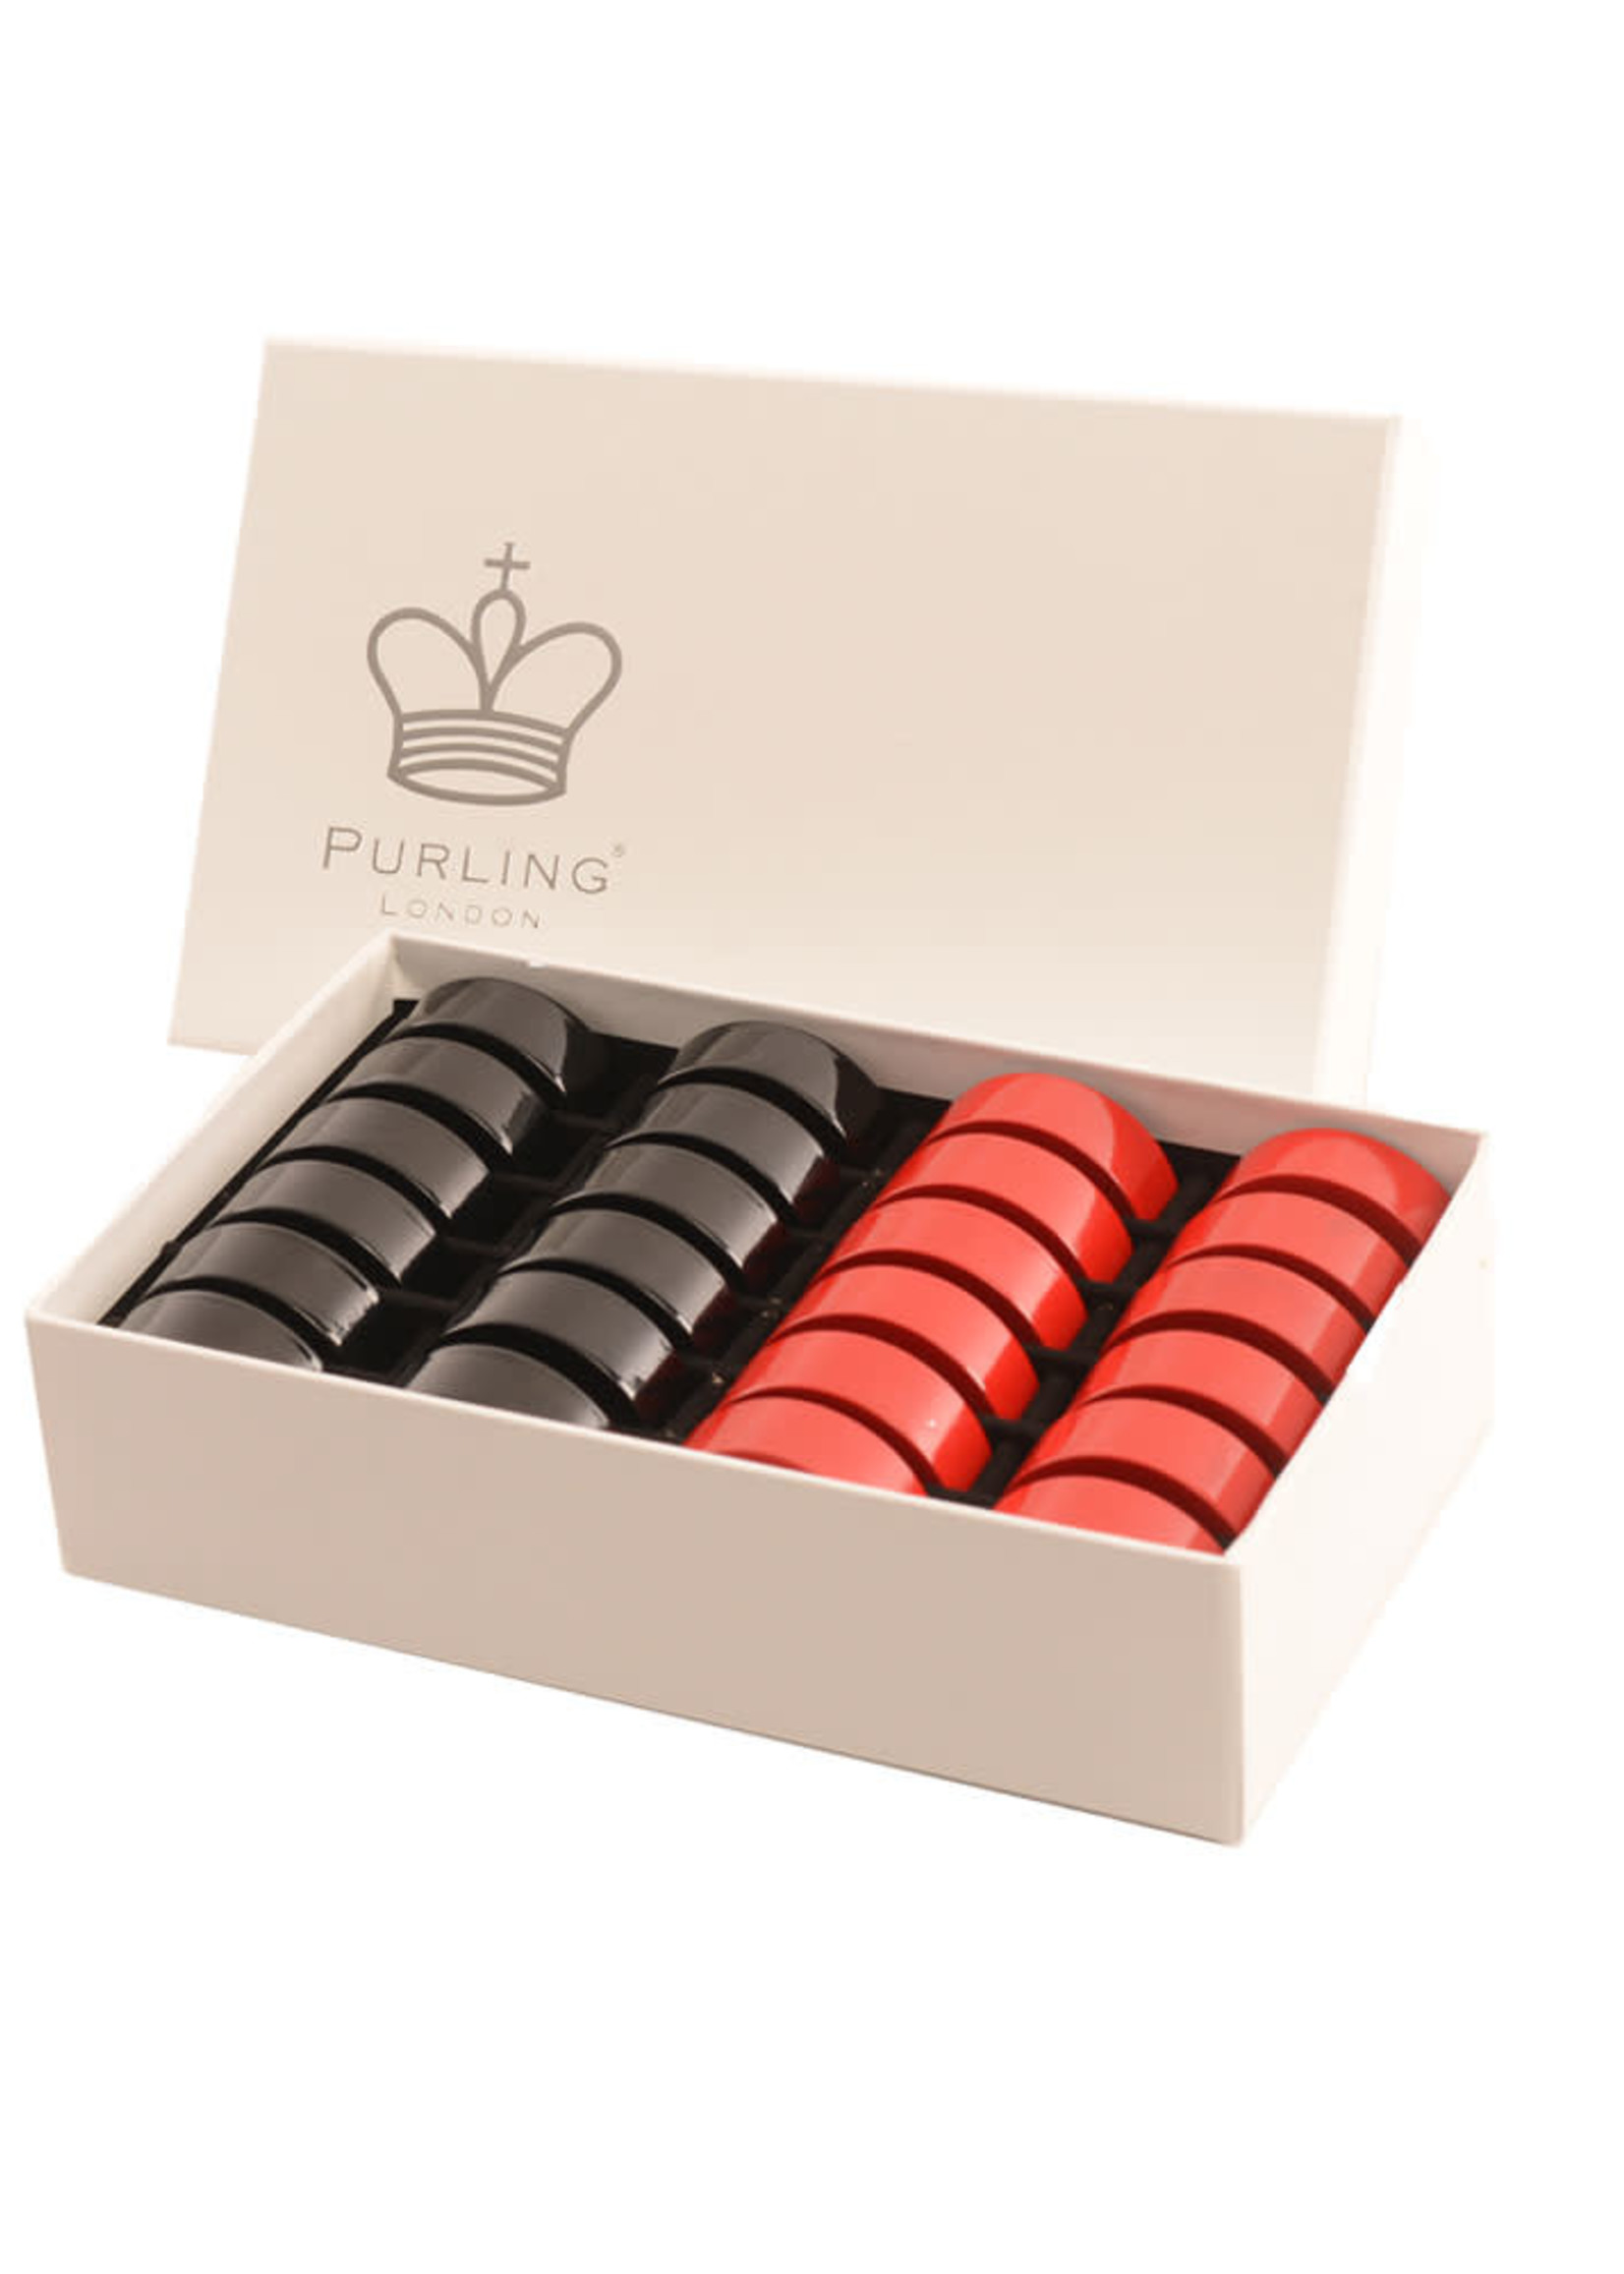 Purling London Purling London Bold Checkers Natural Maple: Classic Red v. Shadow Black